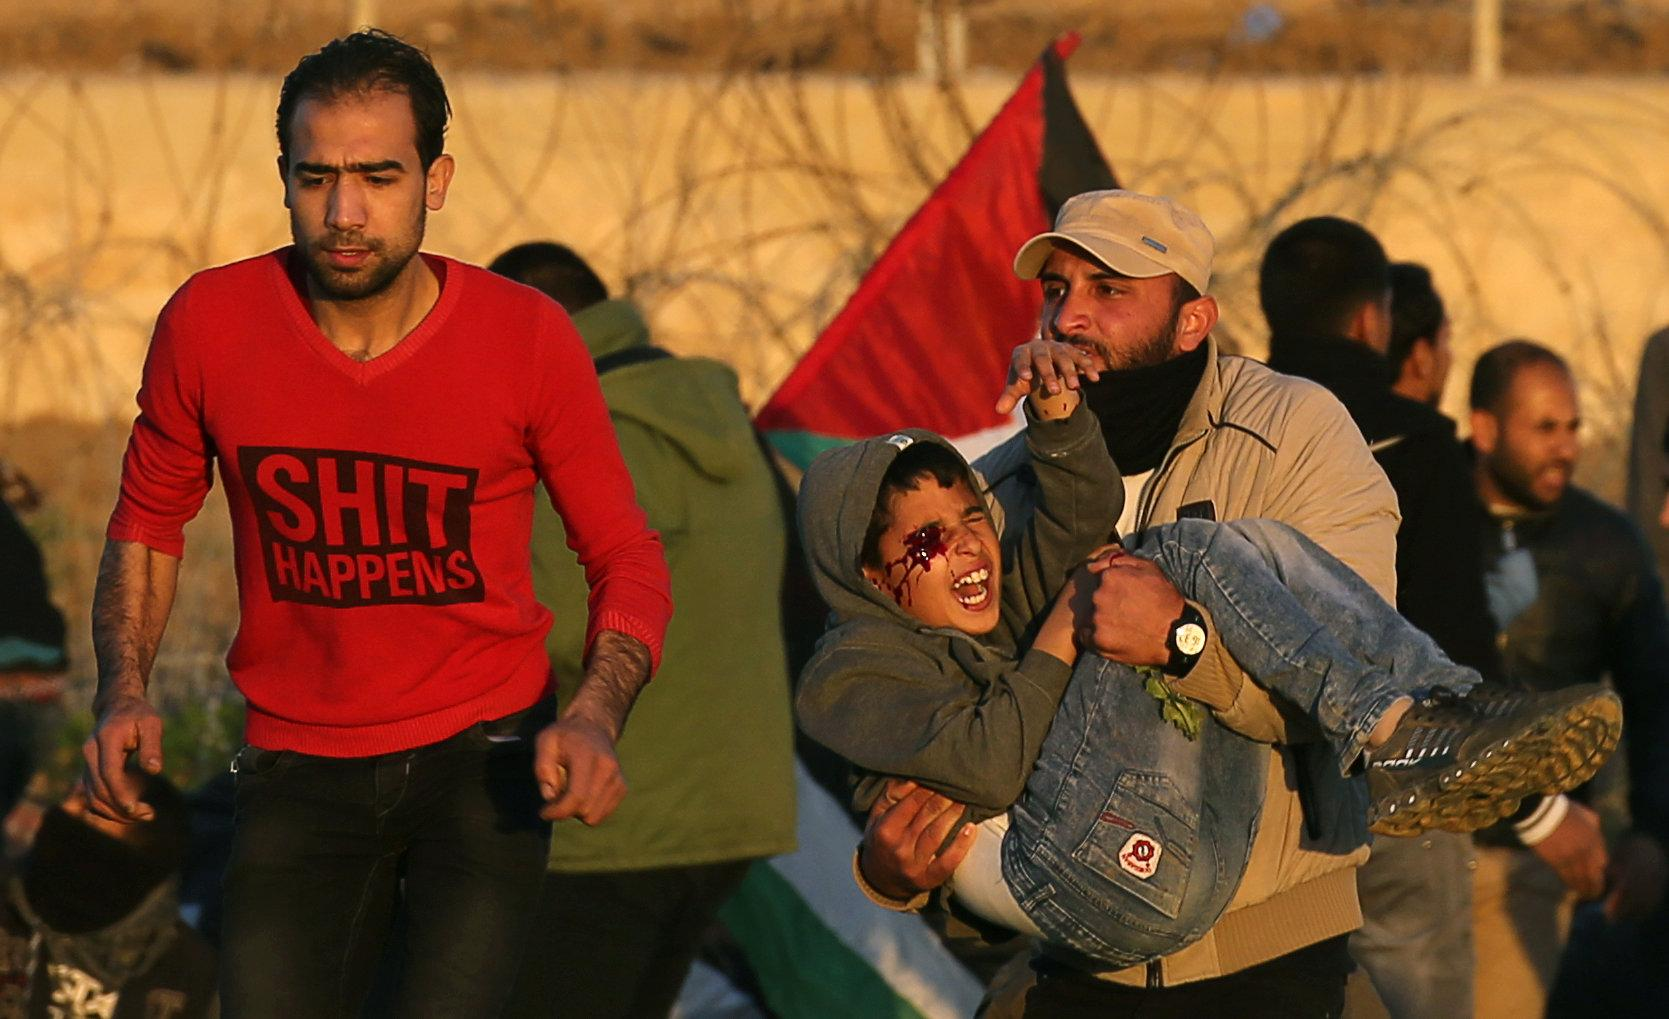 A wounded Palestinian boy is evacuated during a protest at the Israel-Gaza fence, in the southern Gaza Strip January 11, 2019.